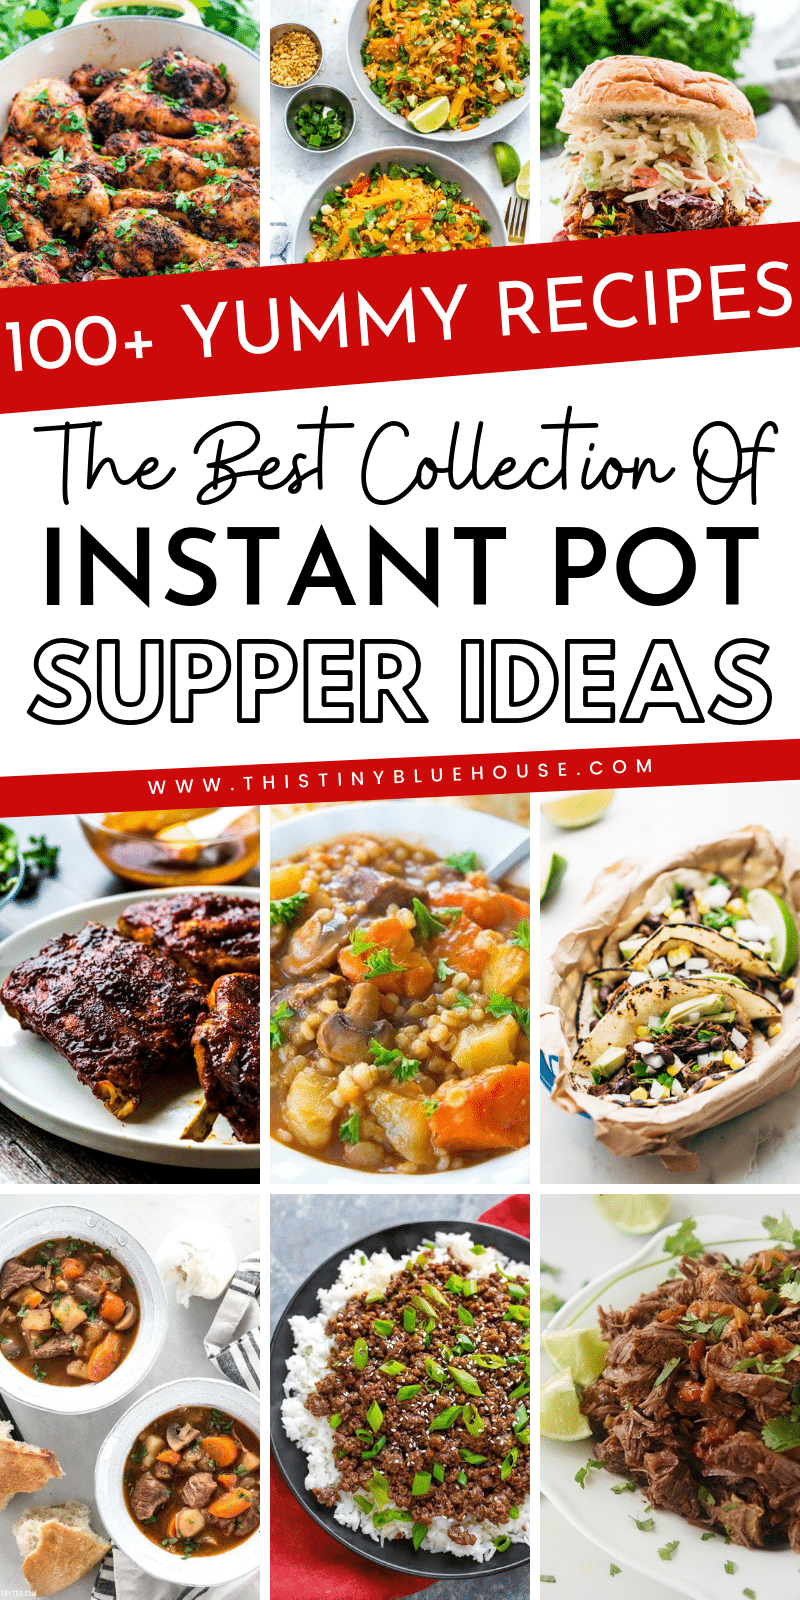 Here are 100+ delicious Instant Pot Meals divided into convenient categories including chicken, beef, pork, fish and vegetarian. This is the ULTIMATE collection of easy Instant Pot supper ideas that are perfect for busy families on busy school nights or anytime they want to put together a delicious meal in a fraction of the time it would take on the stove top. #instantpotdinners #easyinstantpotdinners #bestinstantpotrecipes #ultimateinstantpotdinnerrecipes #deliciousinstantpotrecipes